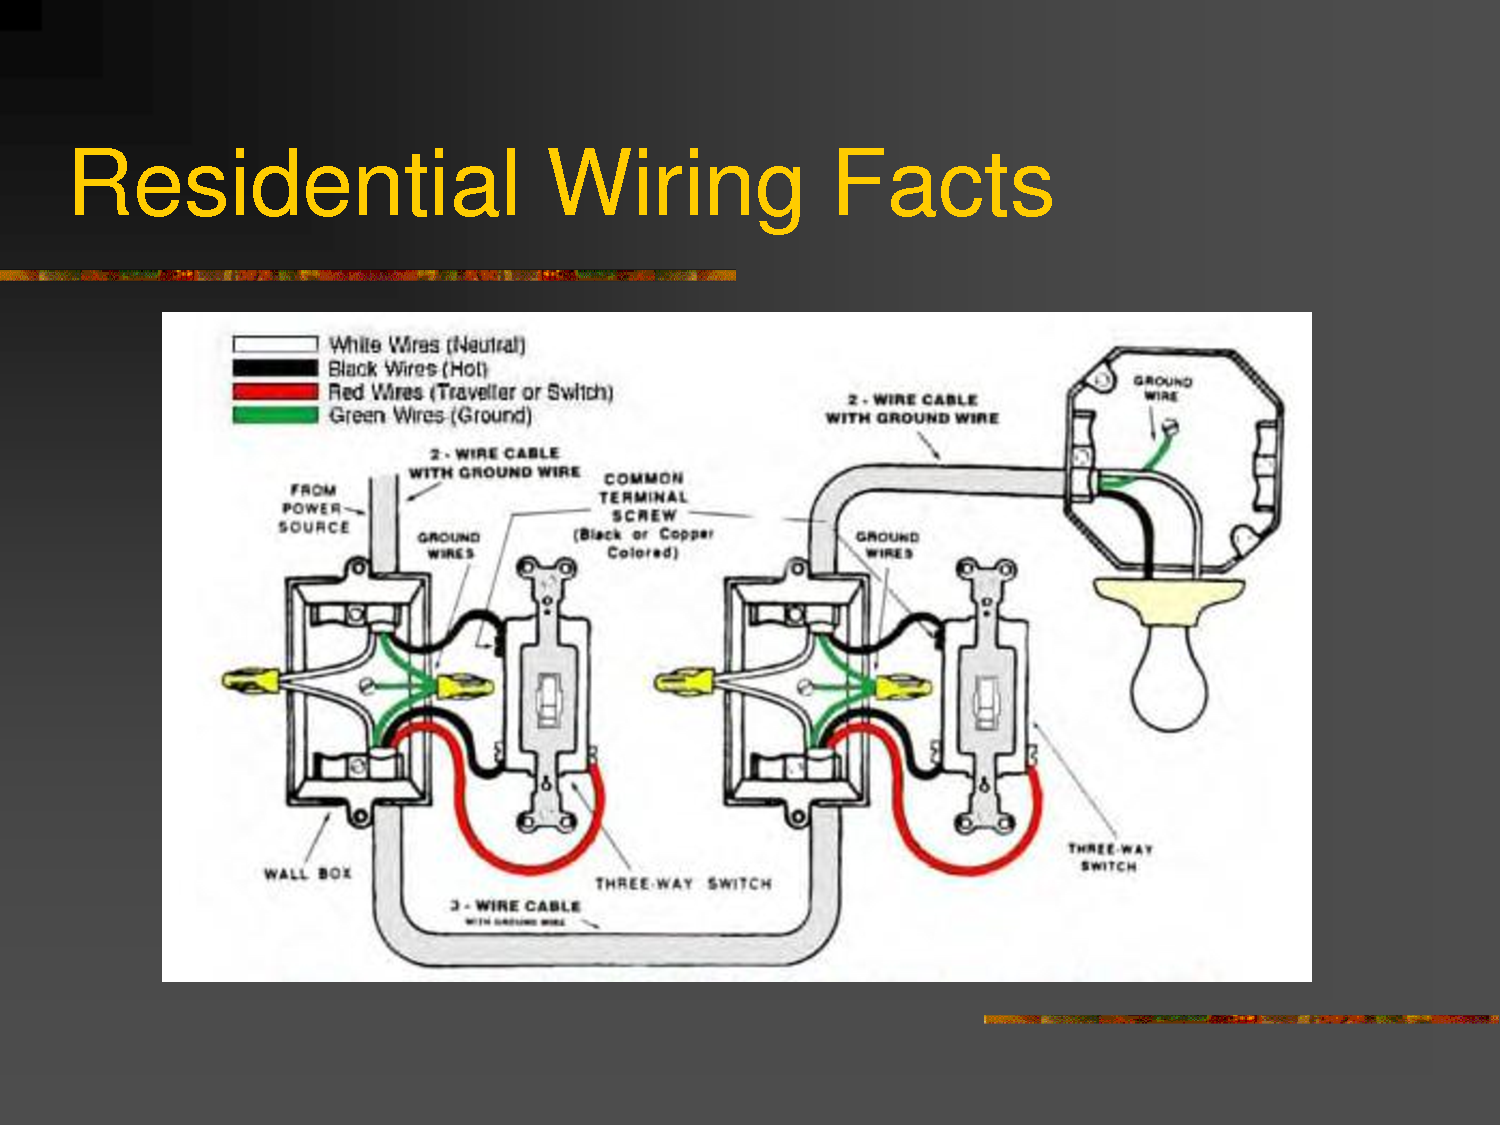 4 Best Images of Residential Wiring Diagrams - House Electrical .